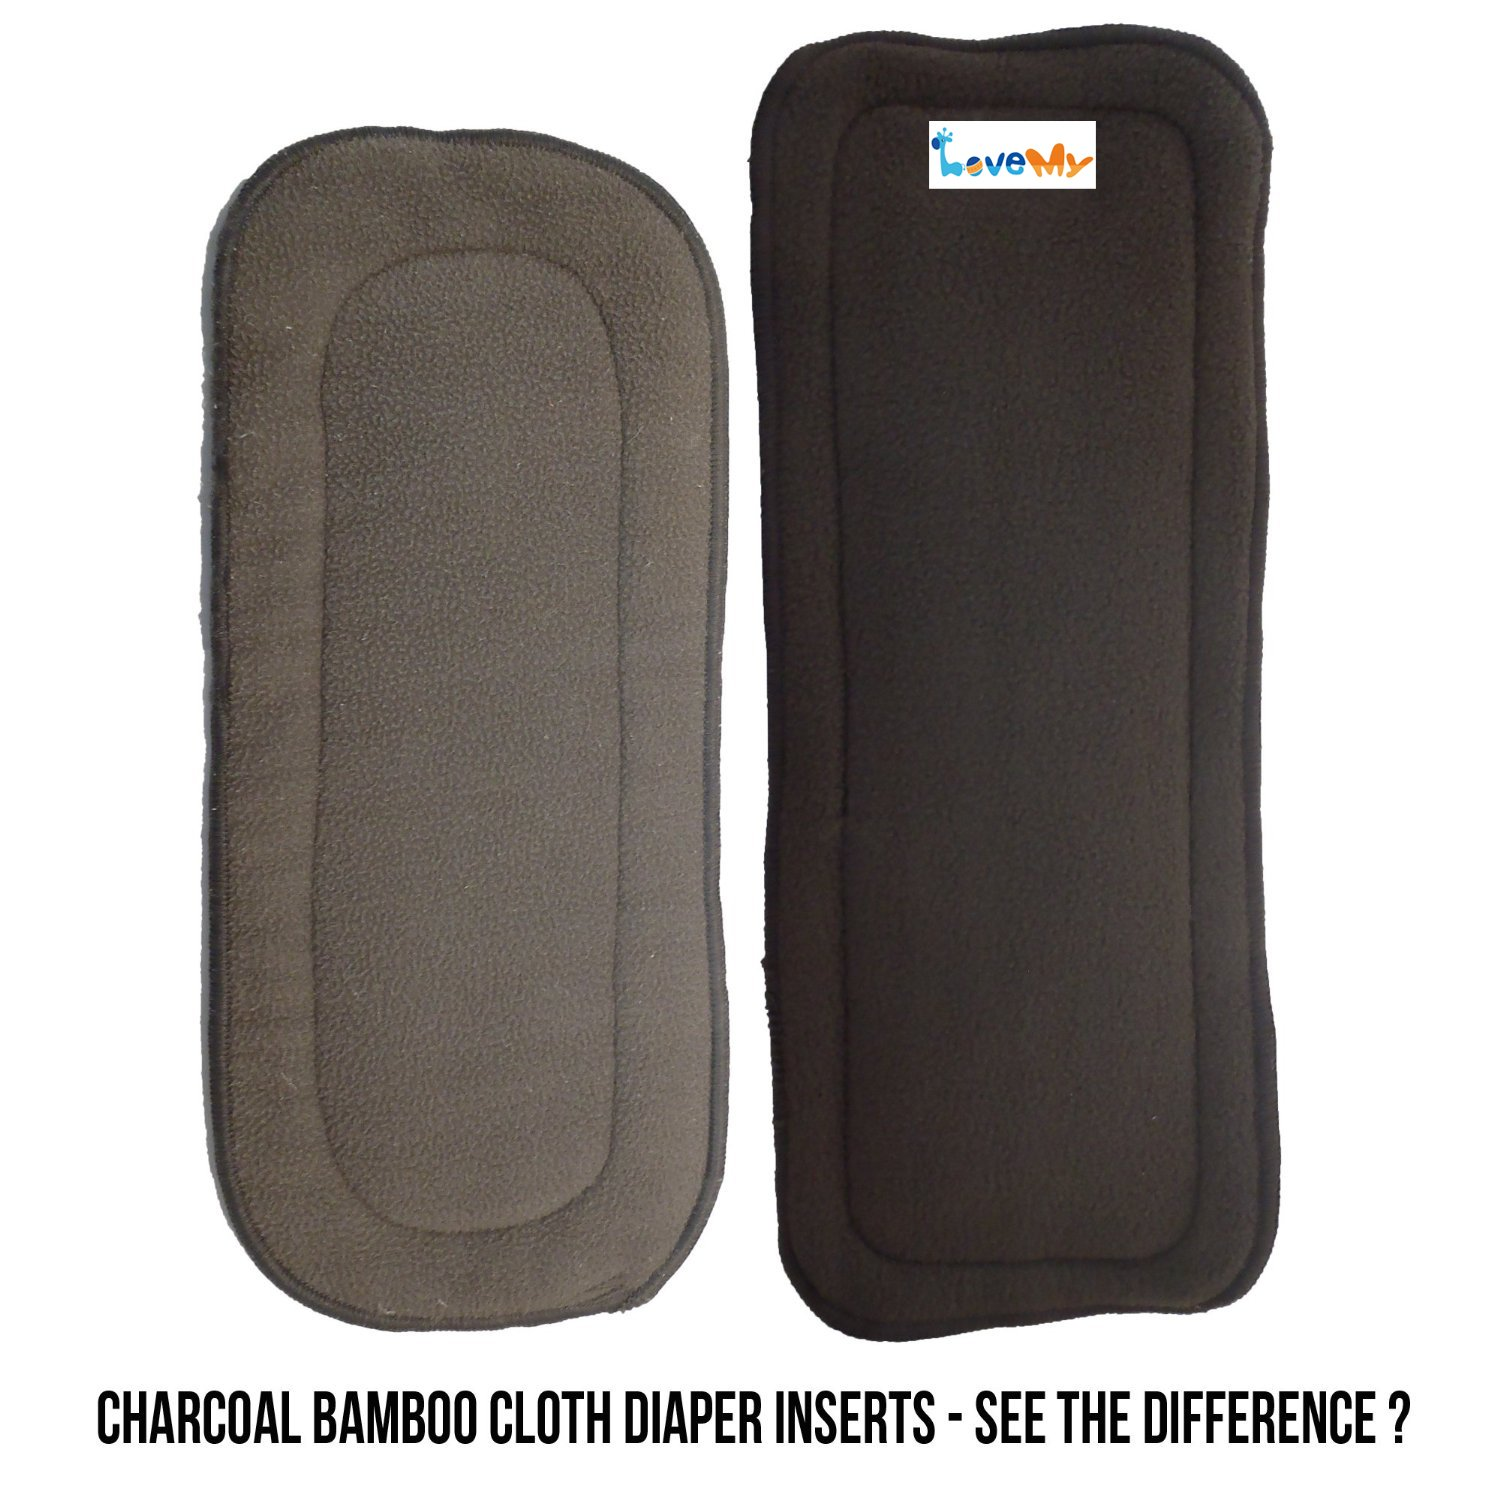 love my Baby 5 Layer Charcoal Bamboo Inserts Reusable Liners for Cloth Diapers Inserts 6 pieces